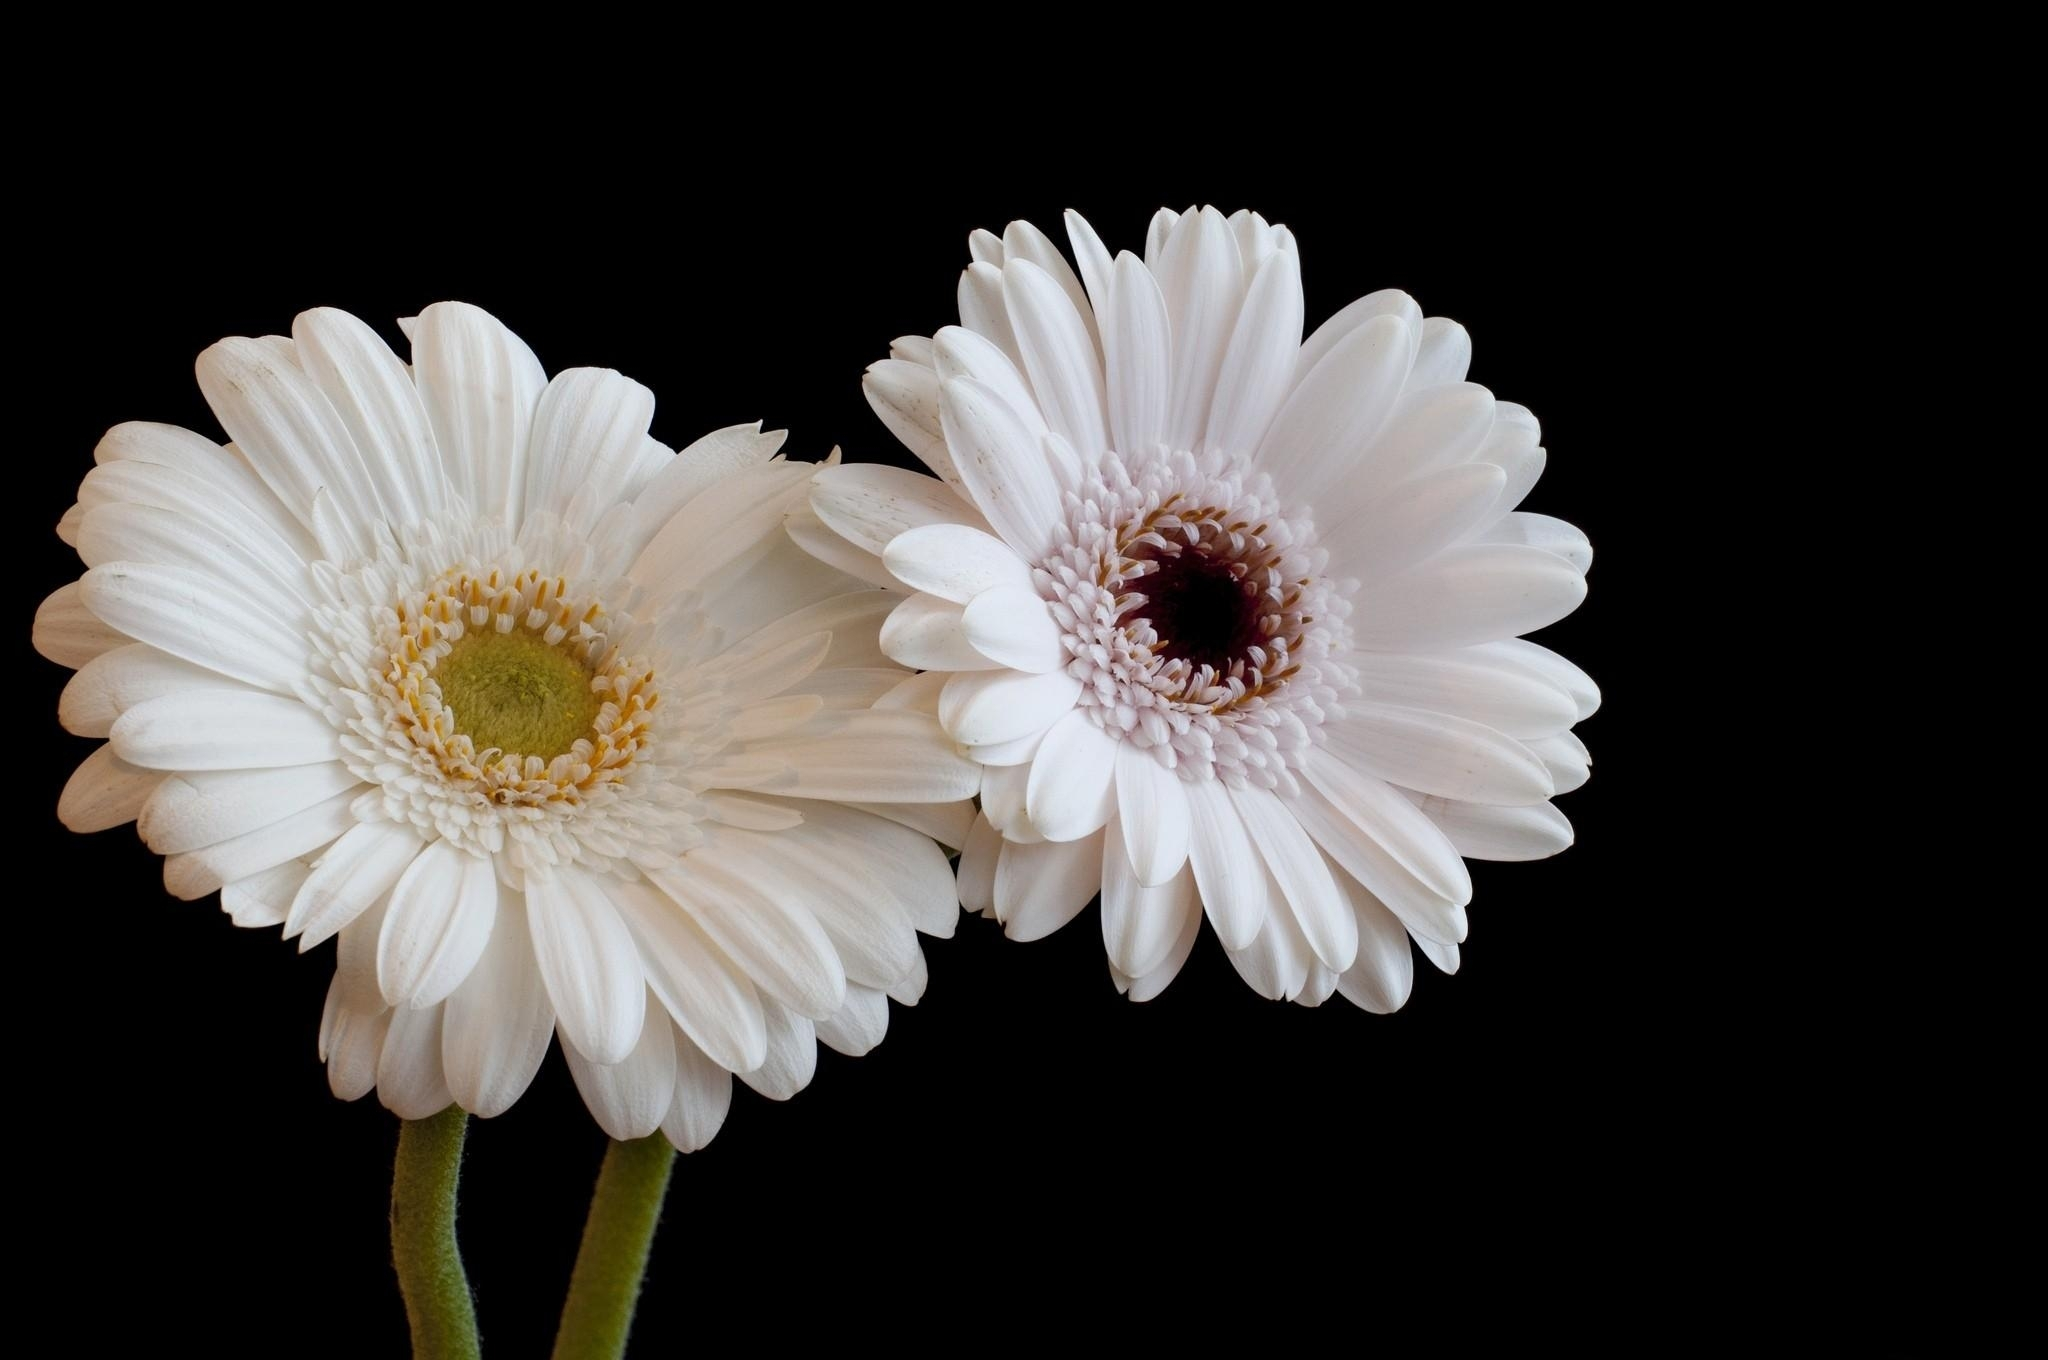 156 gerbera hd wallpapers background images wallpaper abyss hd wallpaper background image id331053 mightylinksfo